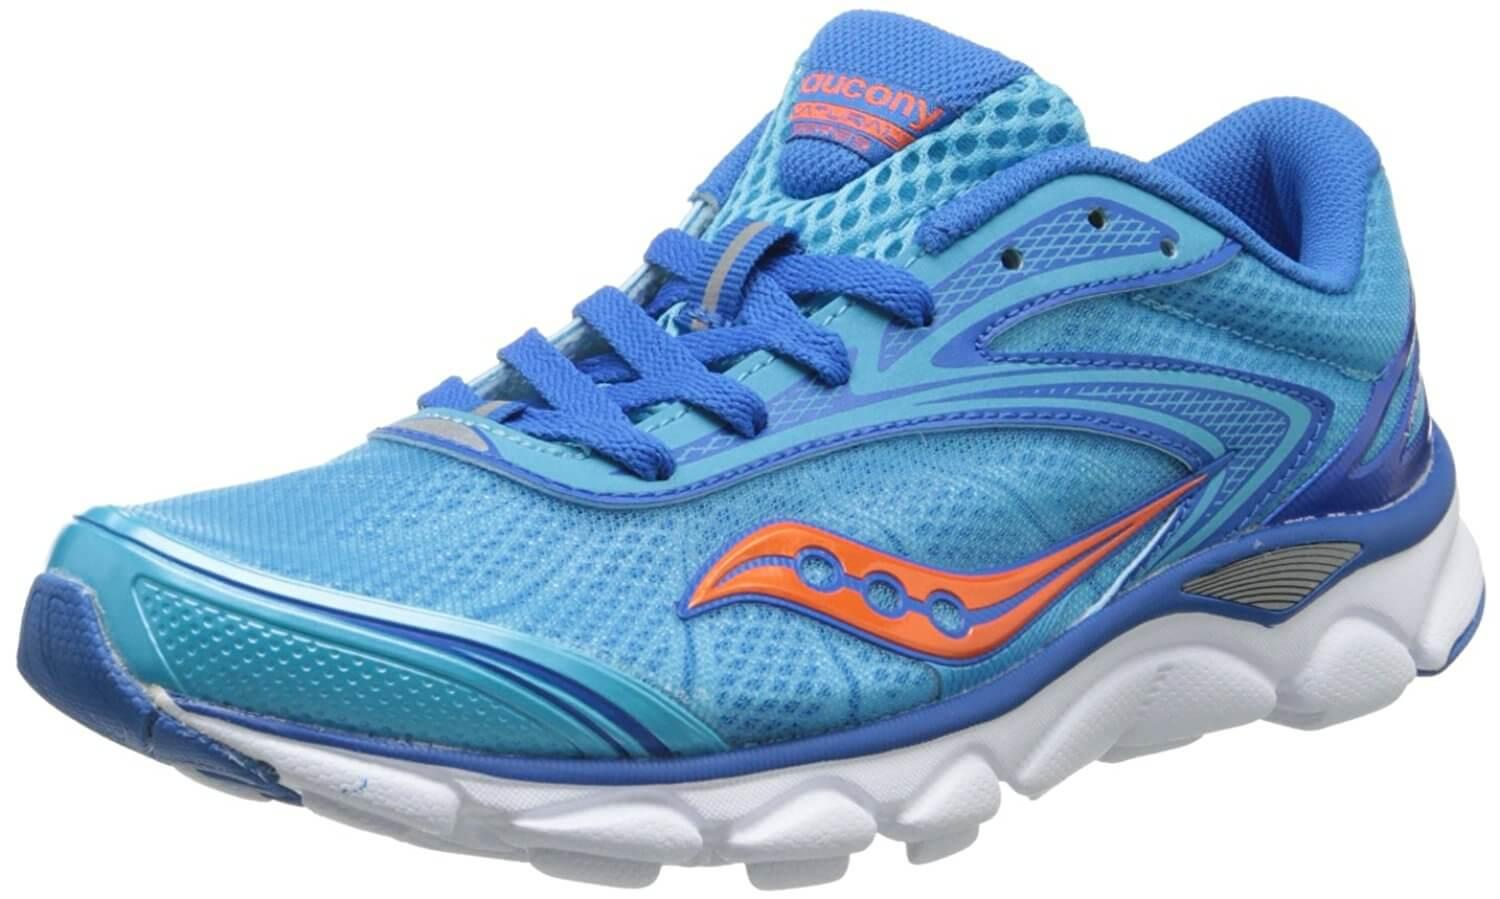 8b790a0b5094 A three quarter view of the Saucony Virrata 2 running shoe ...